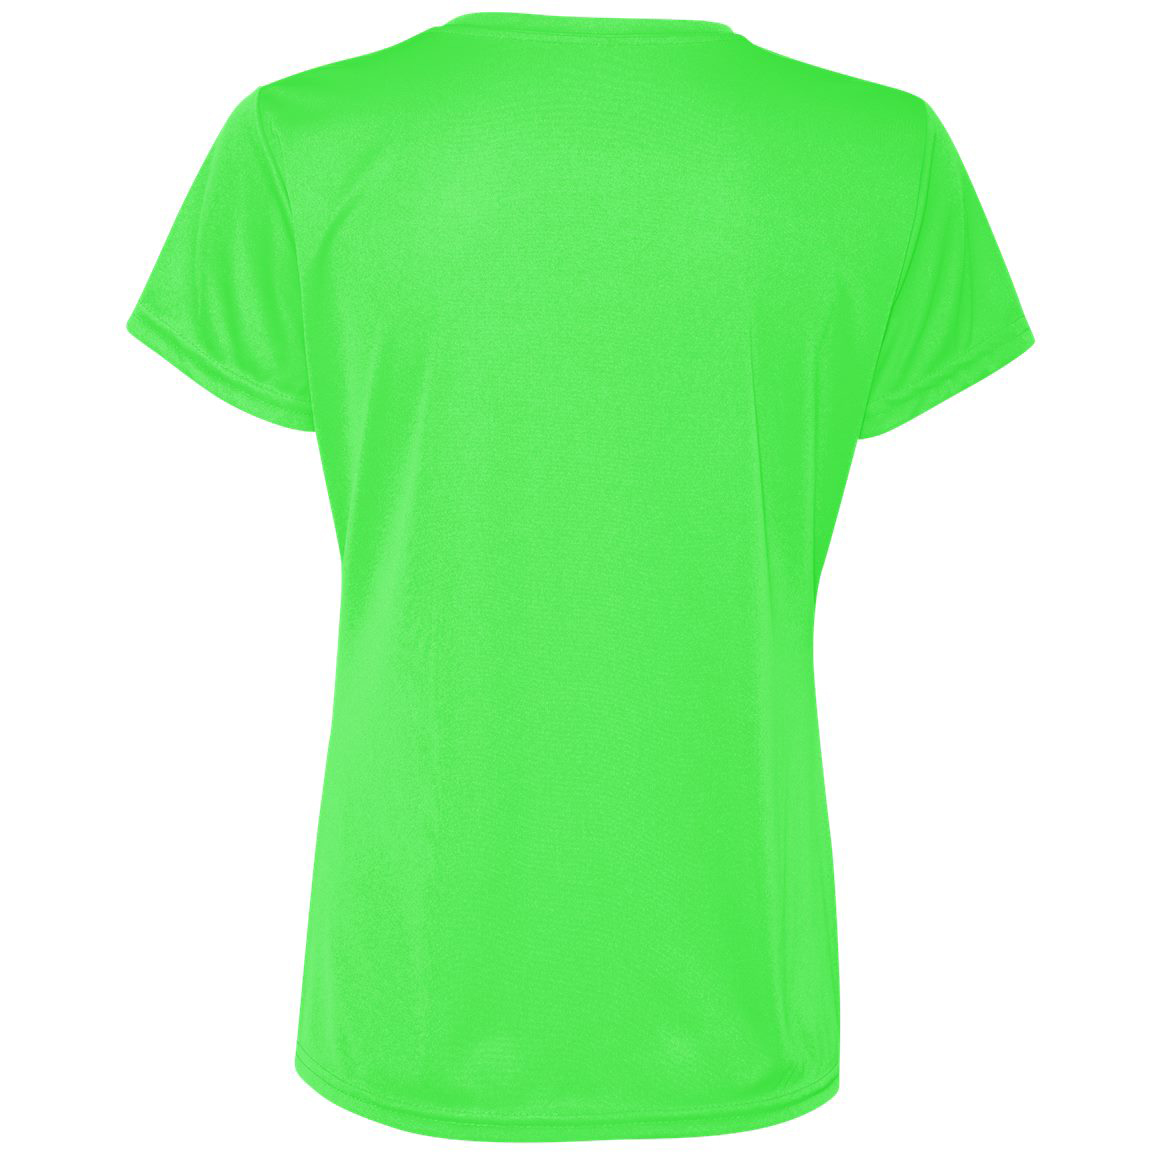 8506eb24f1d Augusta Sportswear 1790 Women s V-Neck Wicking T-Shirt - Lime. AUG-1790-Lime.  AUG-1790-Lime